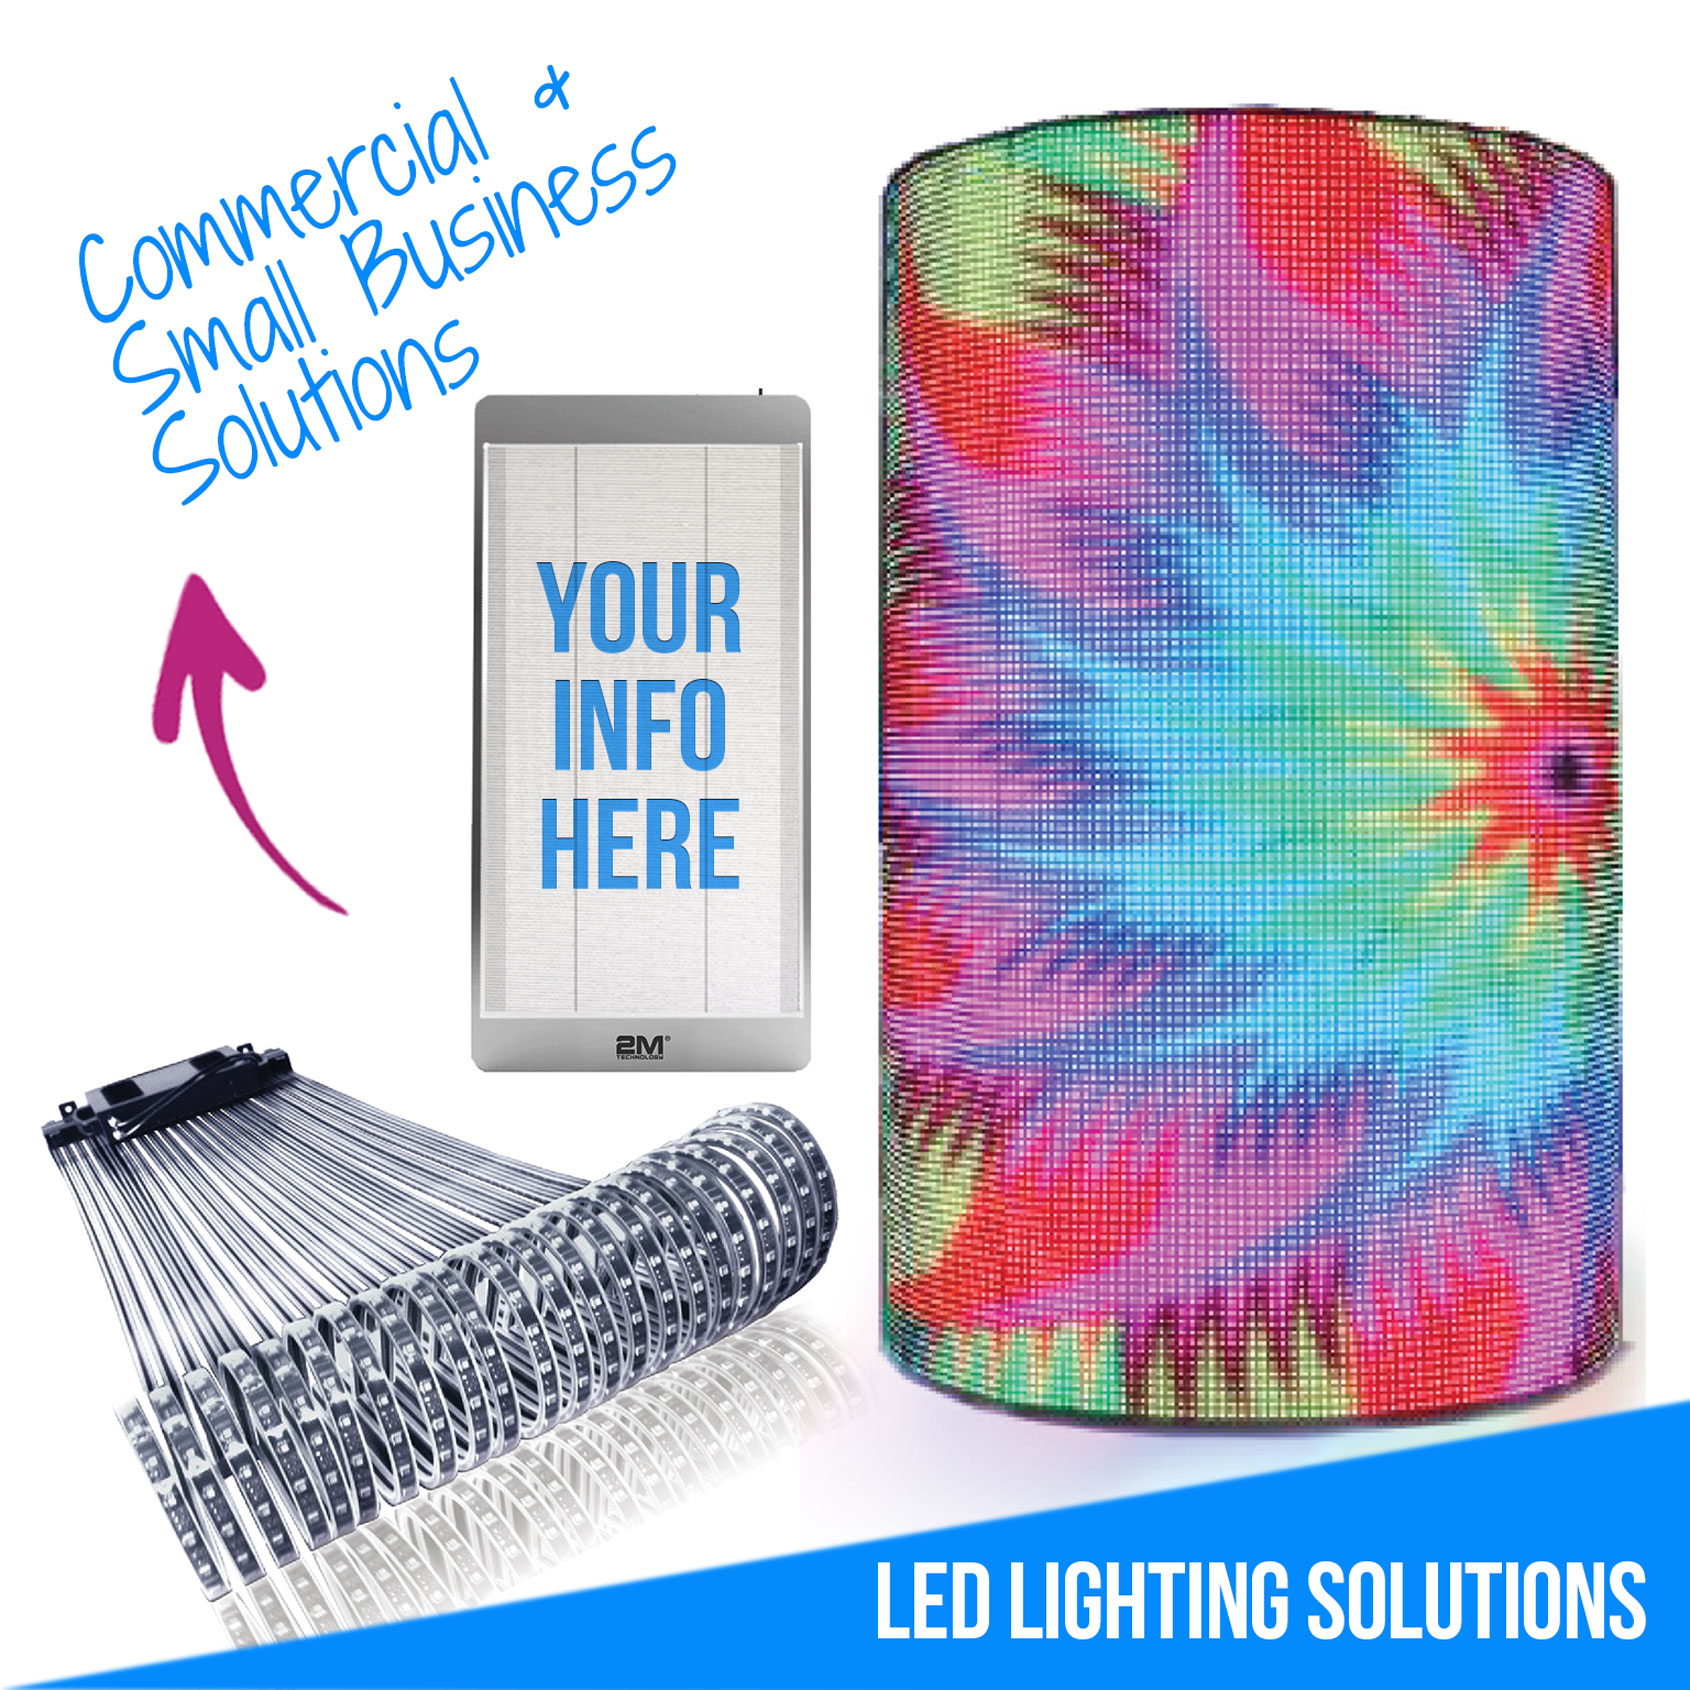 Commercial and Small Business LED Lighting Solutions